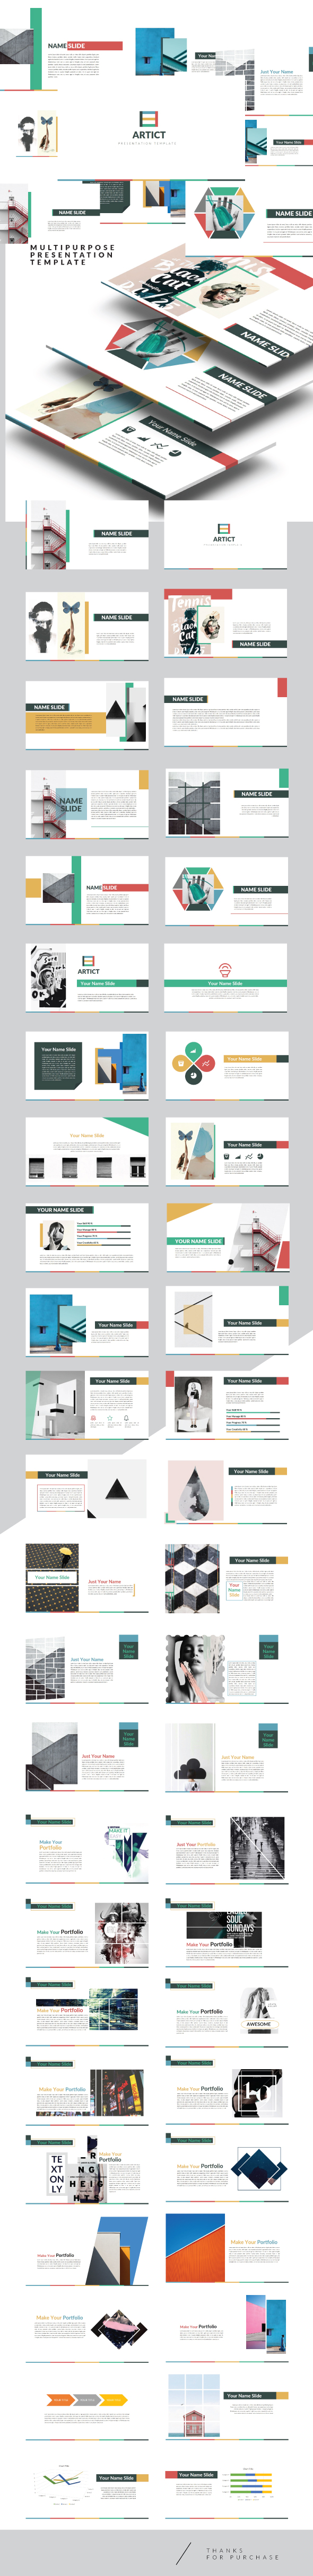 Artic - Multipurpose Keynote Creative template - Creative Keynote Templates